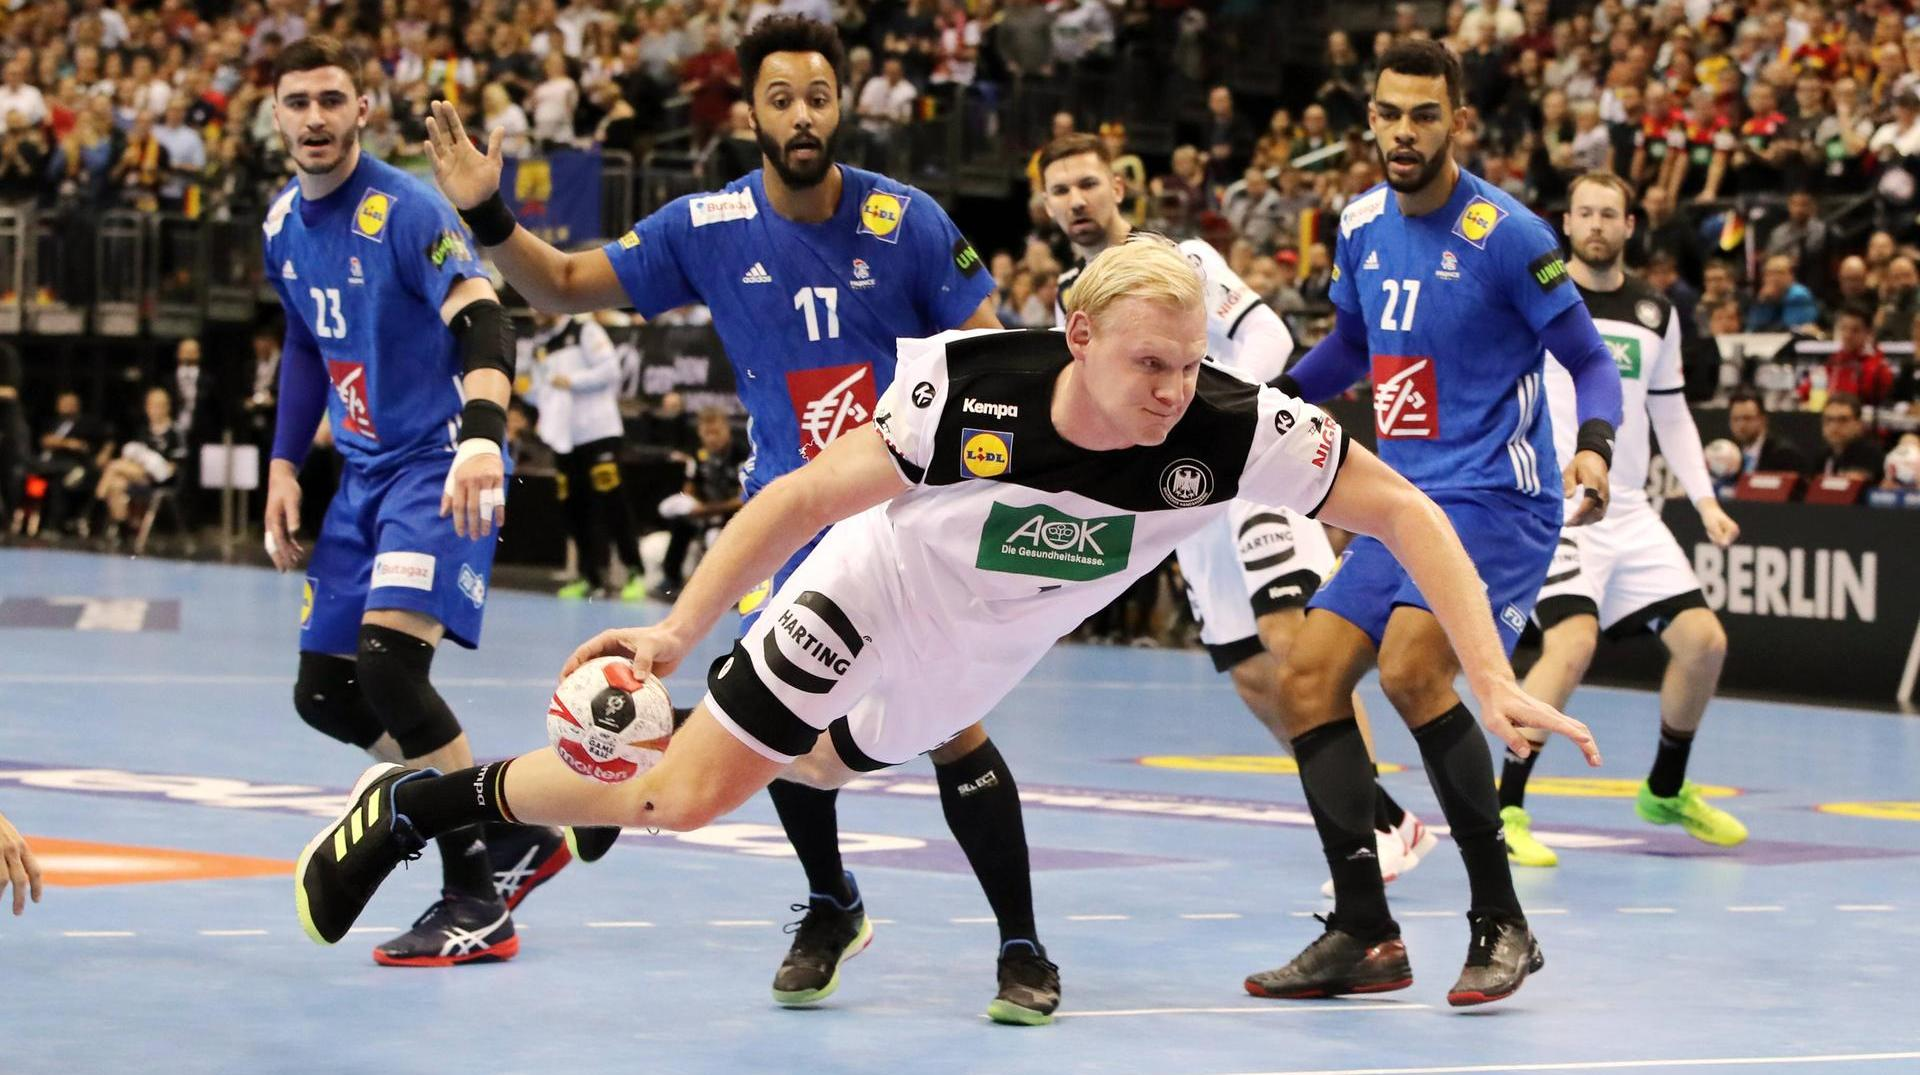 Handball World Cup in the Ticker: Will Germany take the lead this time? Patrick Wiencek flies towards goal: Germany had World Champion France on the verge of defeat. (Source: Contrast)